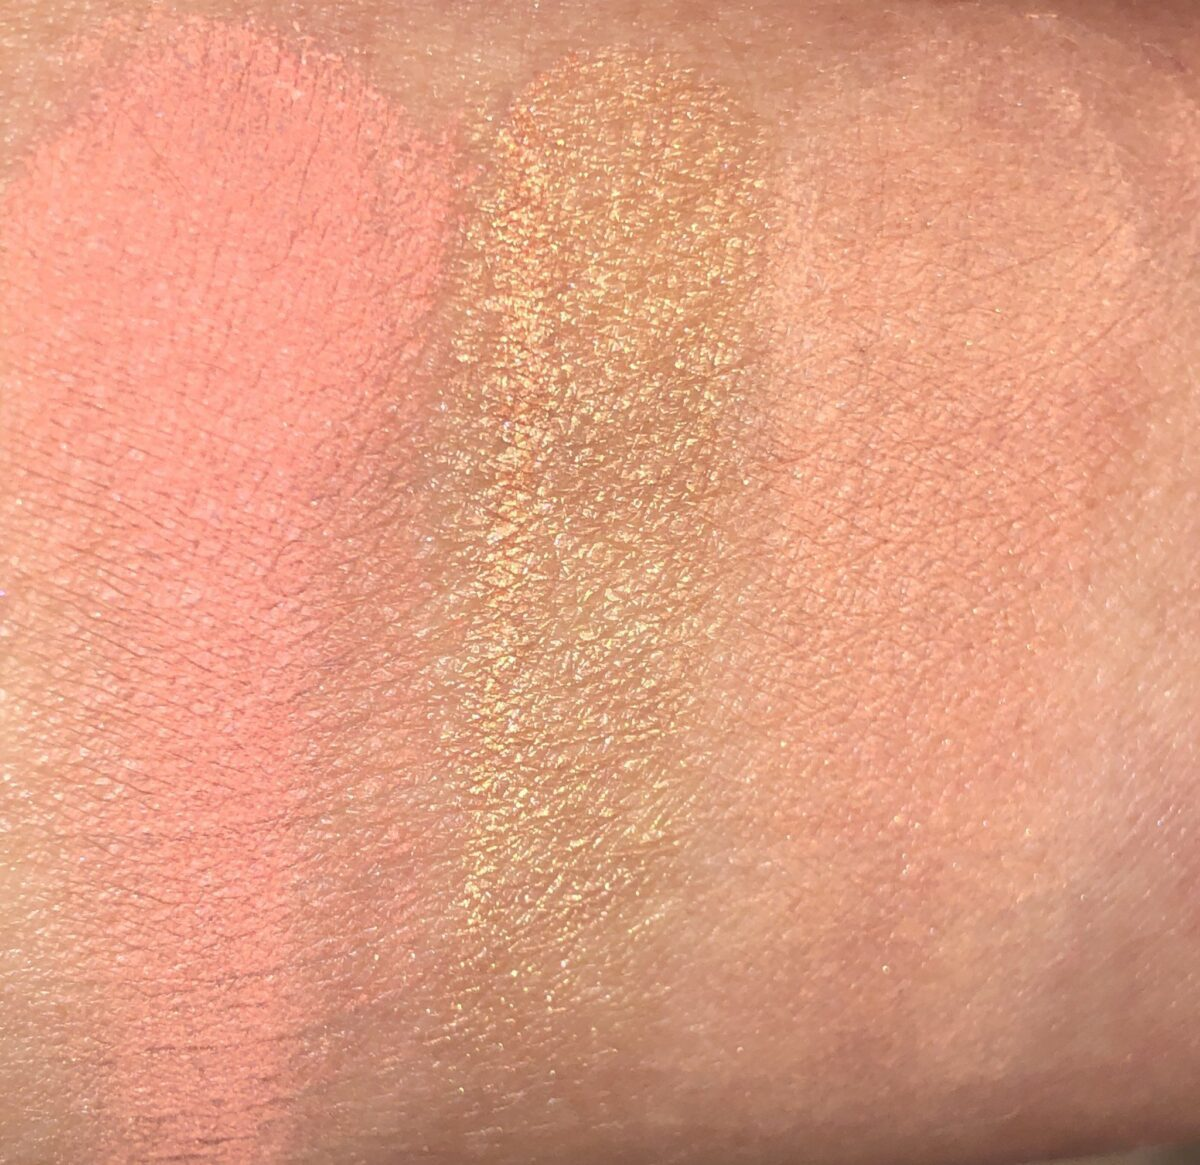 SWATCHES BEACH-A-HOLIC, SHORE THING AND HEAT WAVE